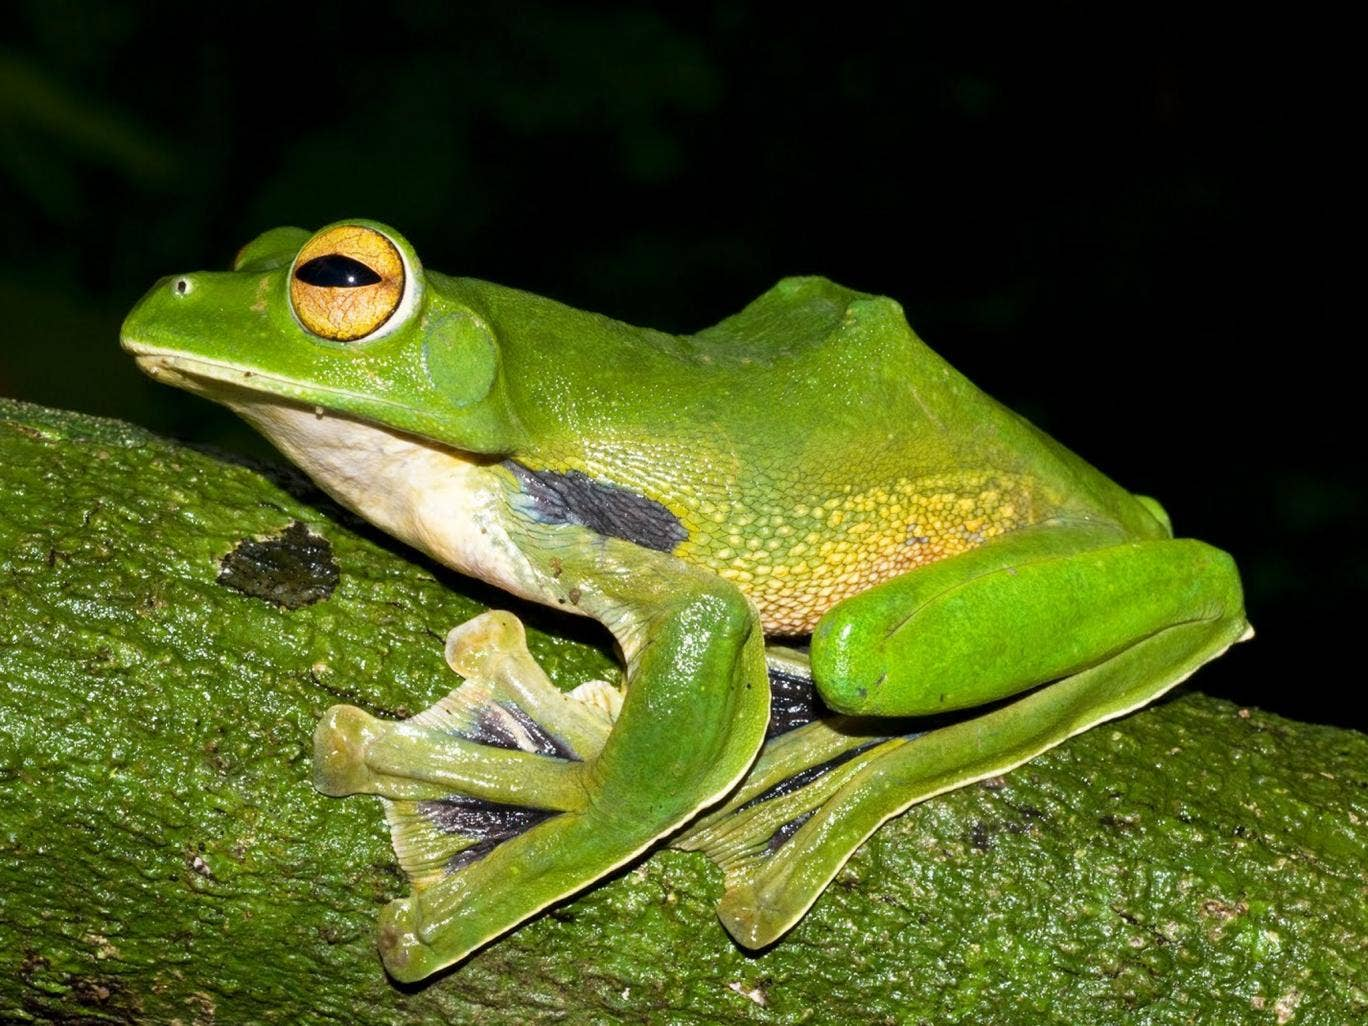 A Giant green flying frog which is among the new species found by scientists in the Greater Mekong region